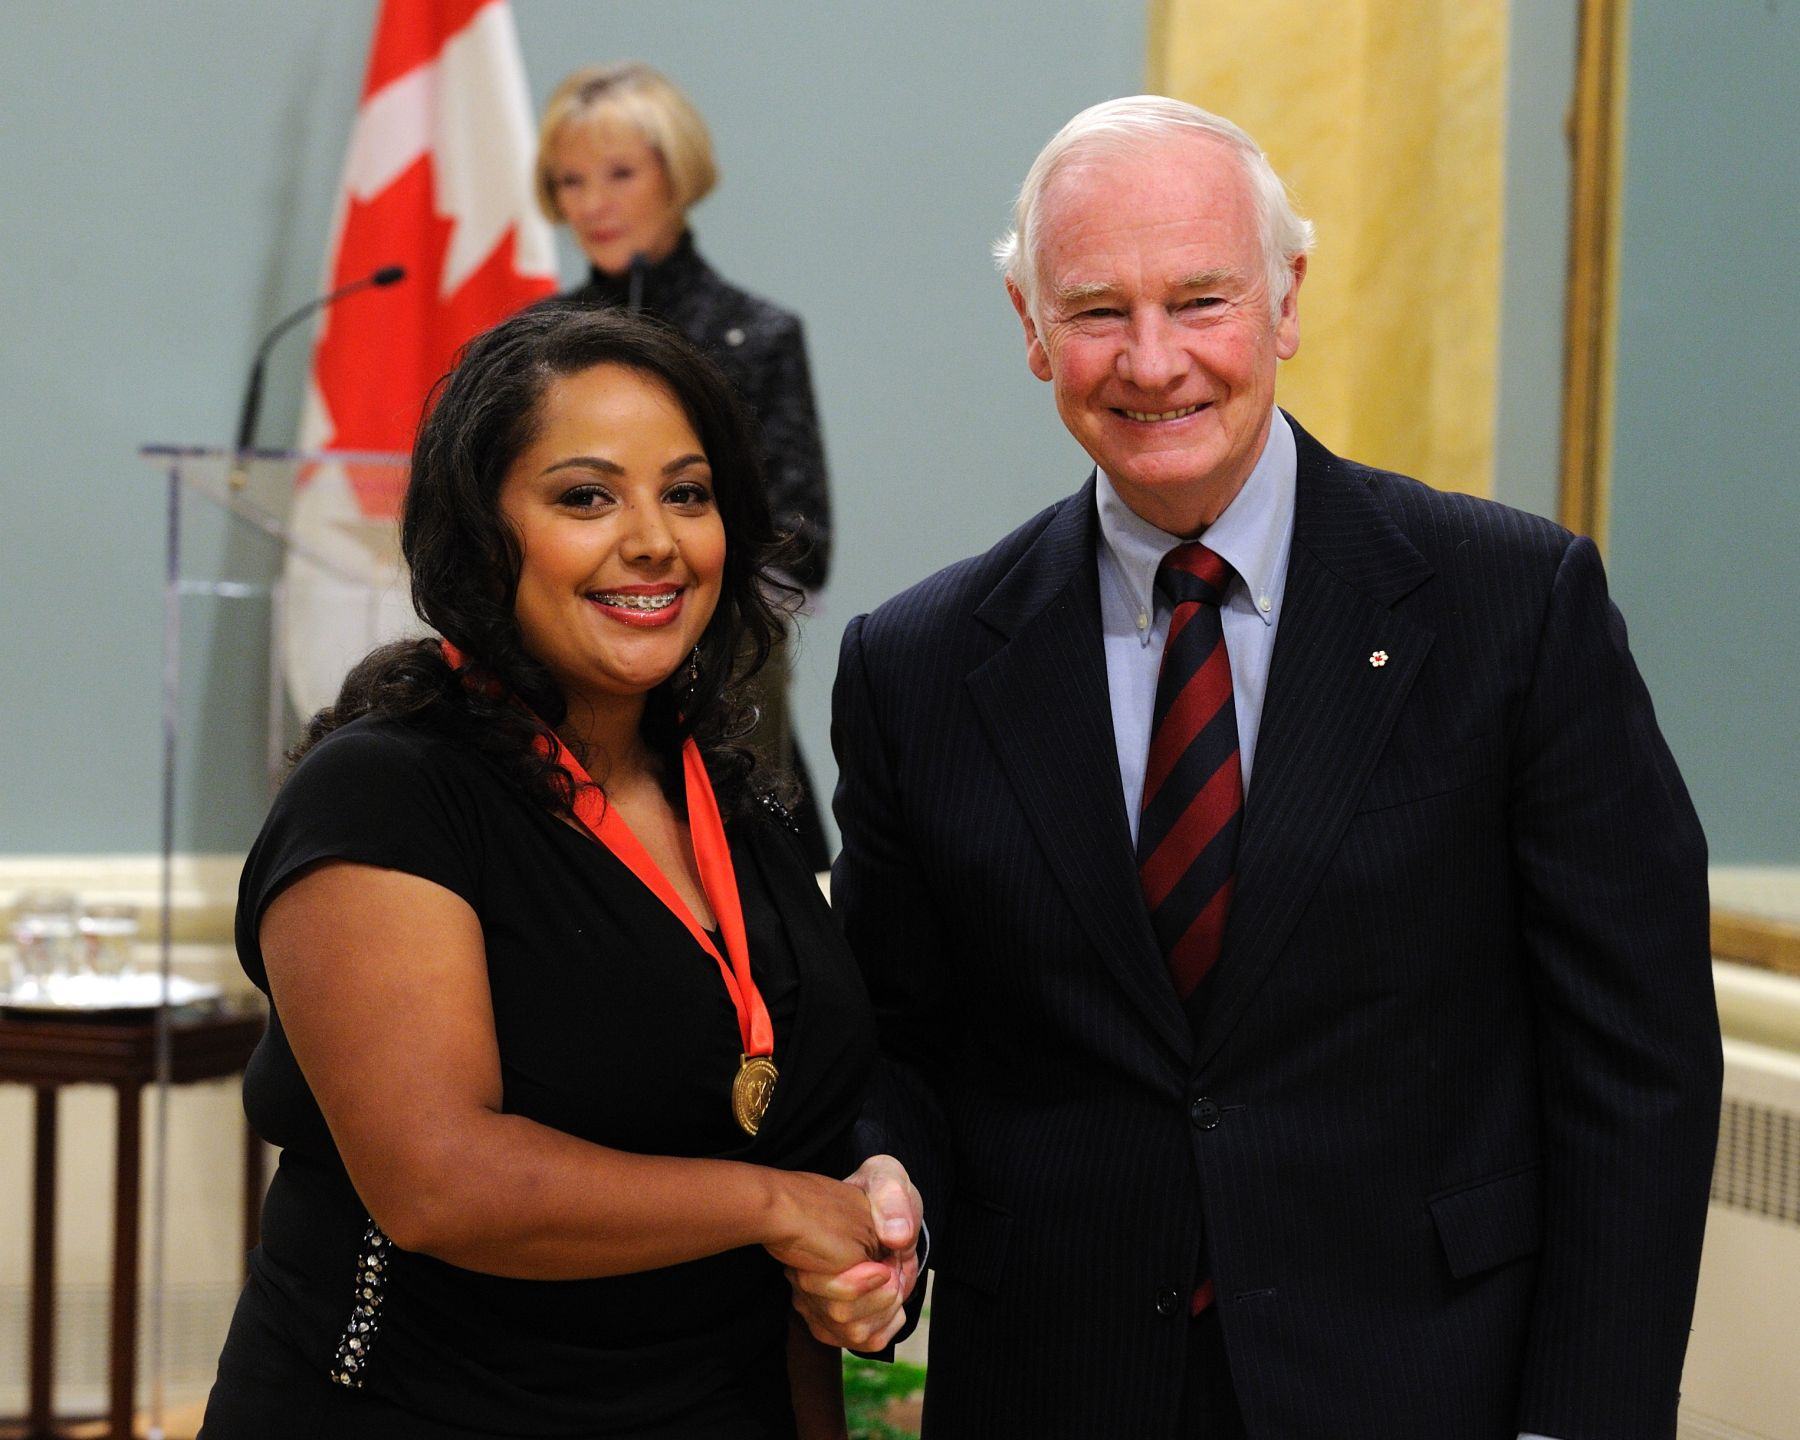 His Excellency awarded the Governor General's History Awards for Excellence in Teaching to Shantelle Browning-Morgan, of Walkerville Collegiate Institute in Windsor, Ontario, for piloting an innovative course that illuminates the history of a unique group of people who settled in the local region to escape slavery in the United States.